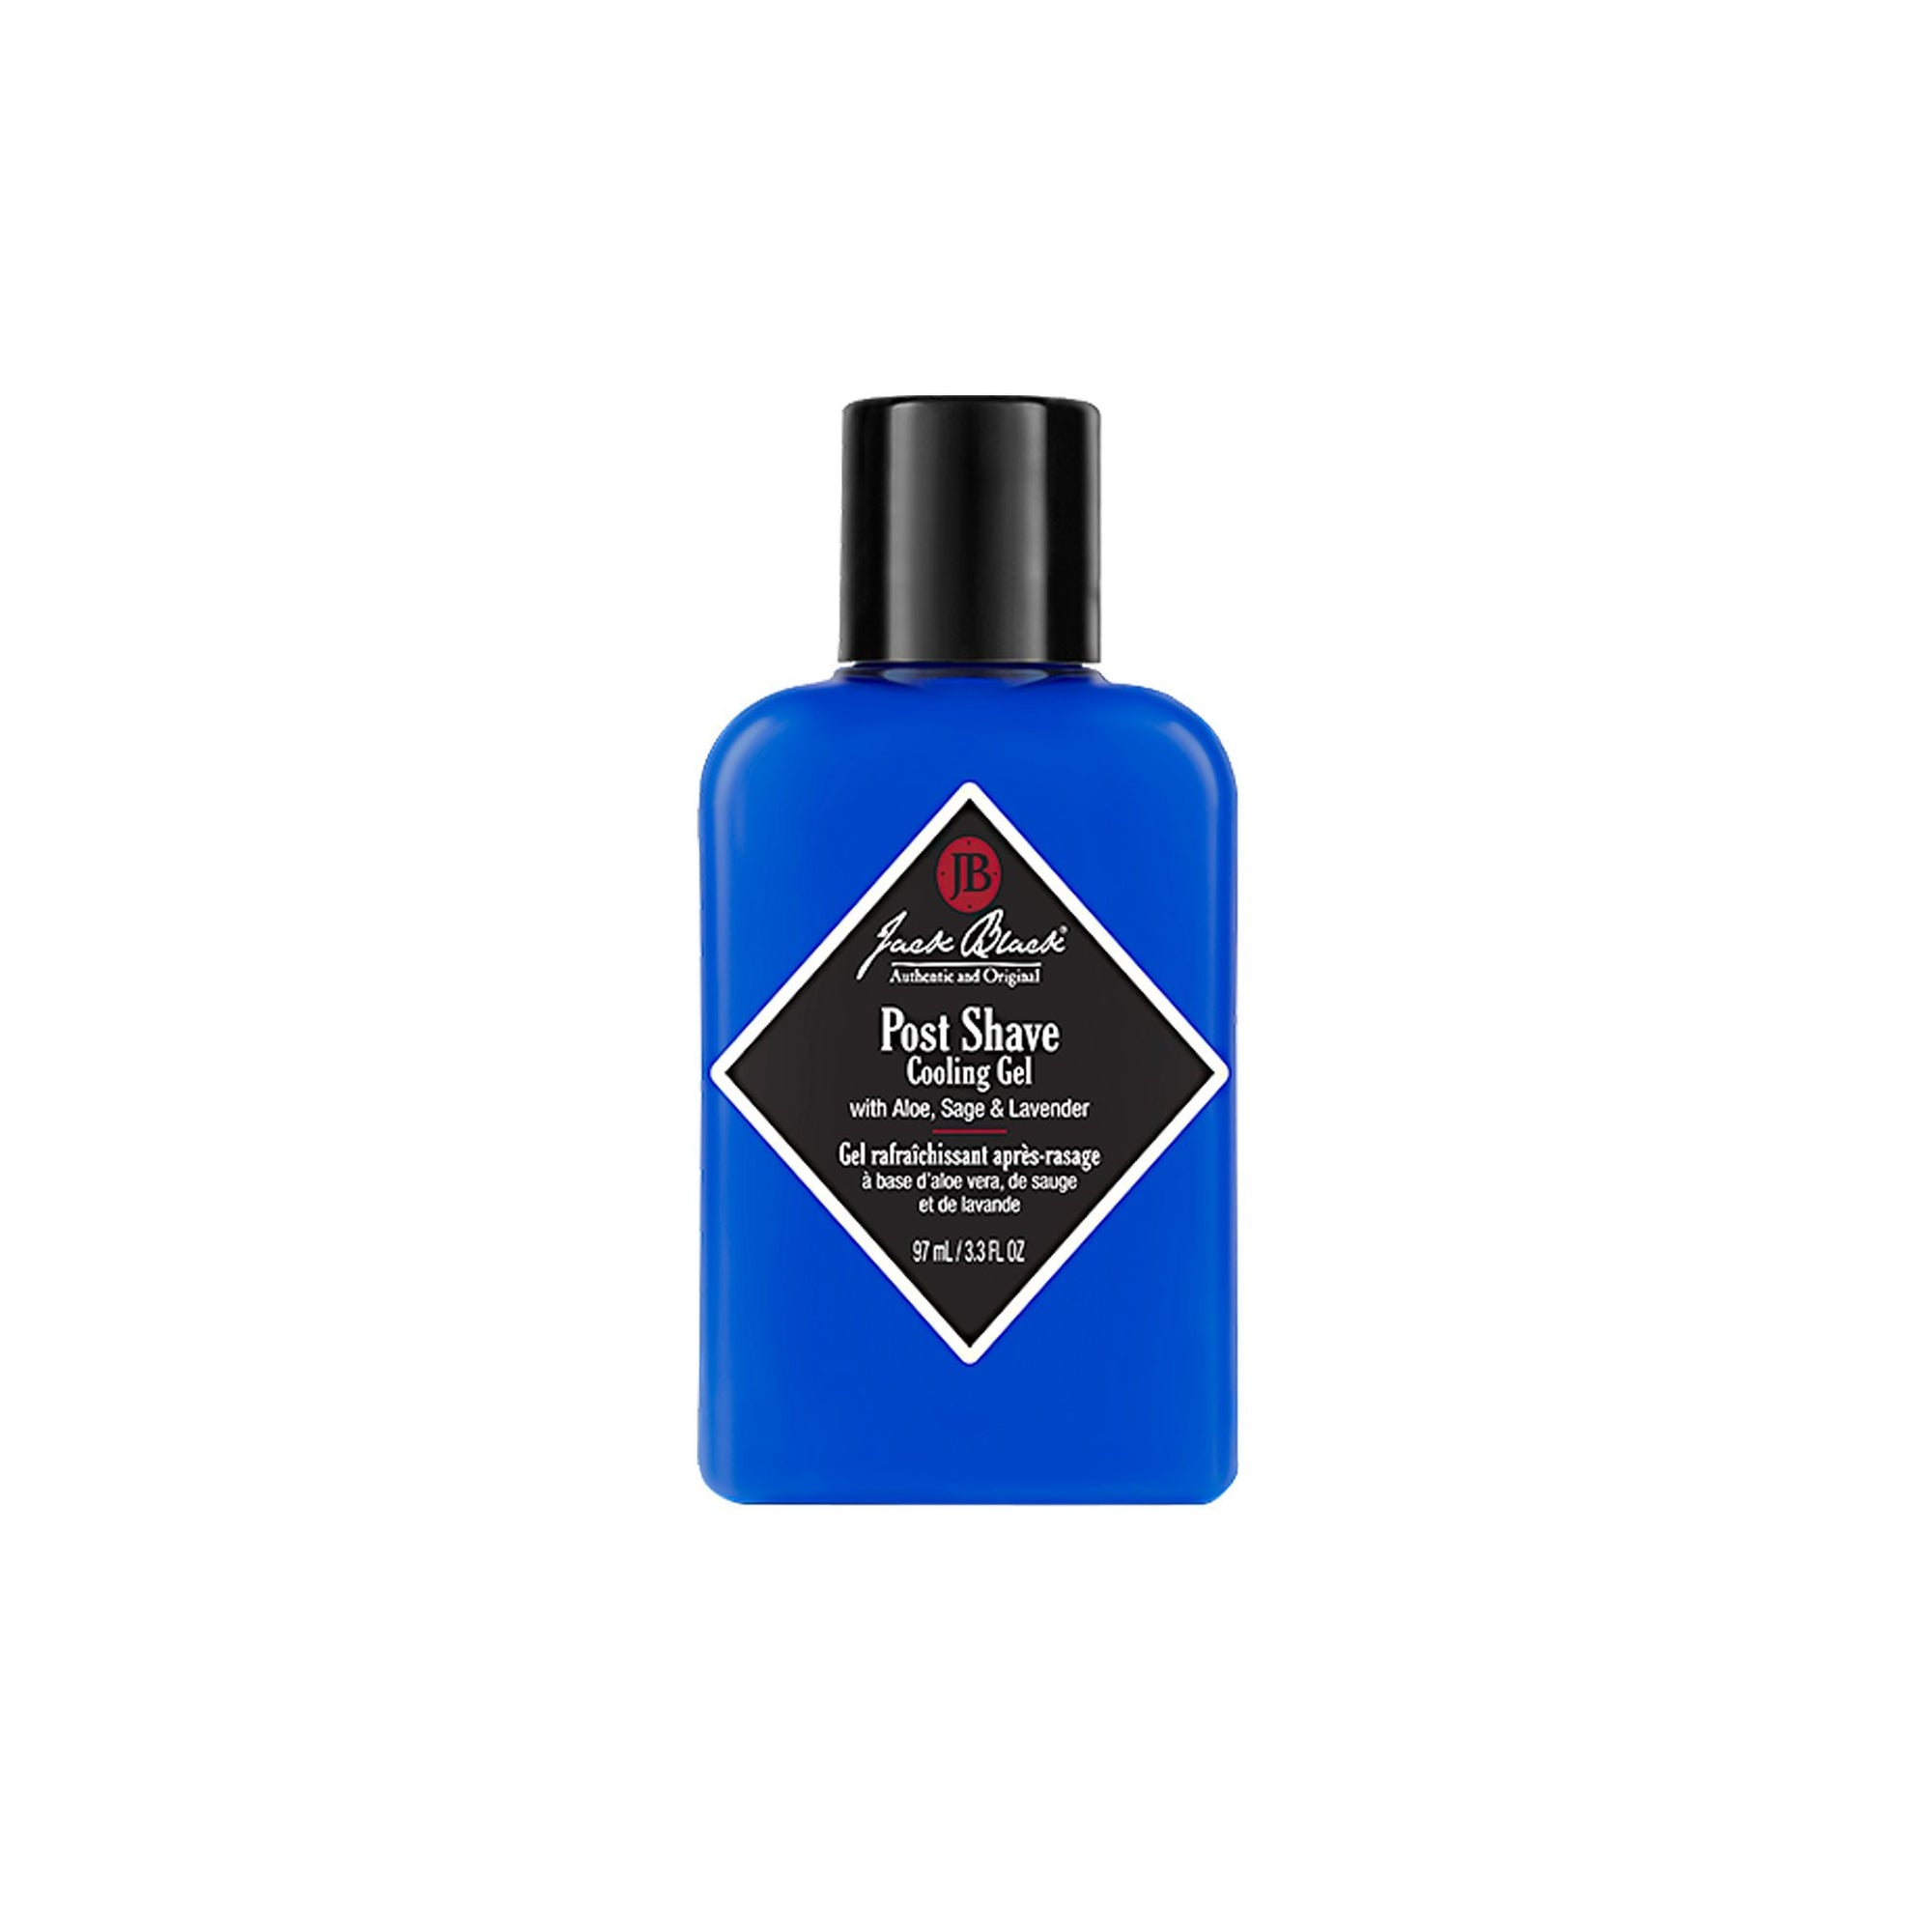 Jack Black Post Shave Cooling Gel 98ml